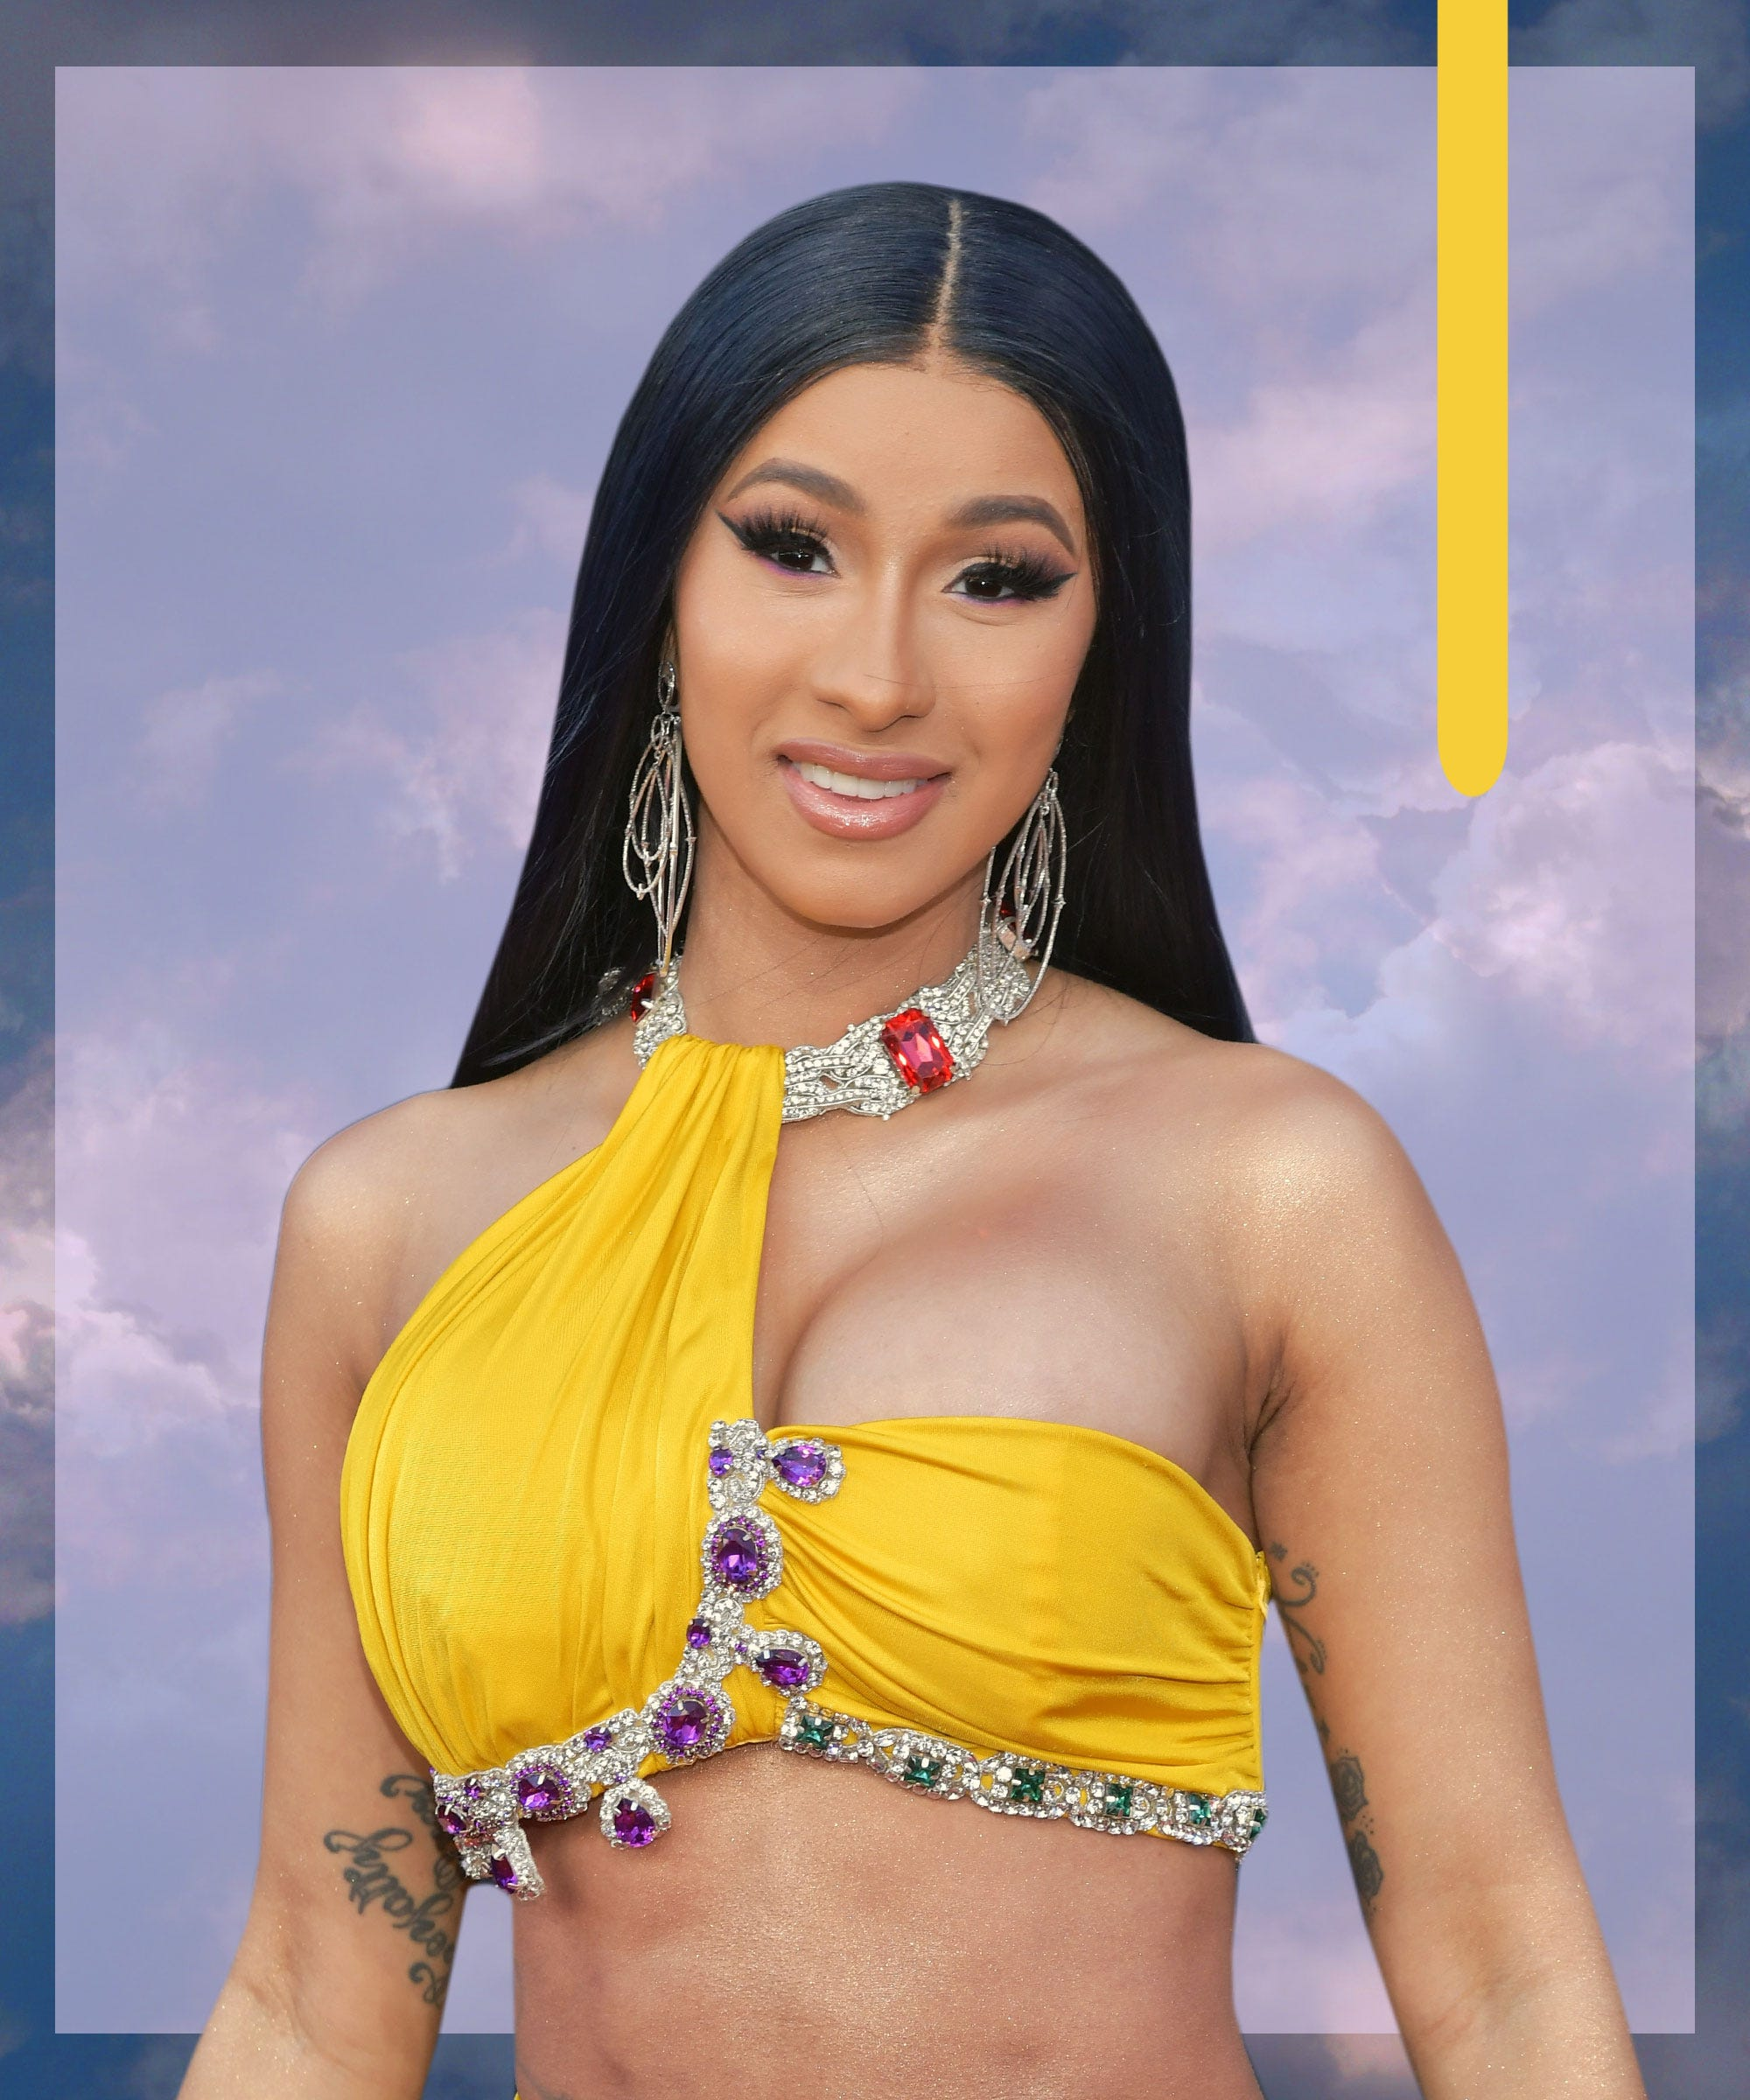 Cardi B Reveals Liposuction Surgery After Flaunting Abs